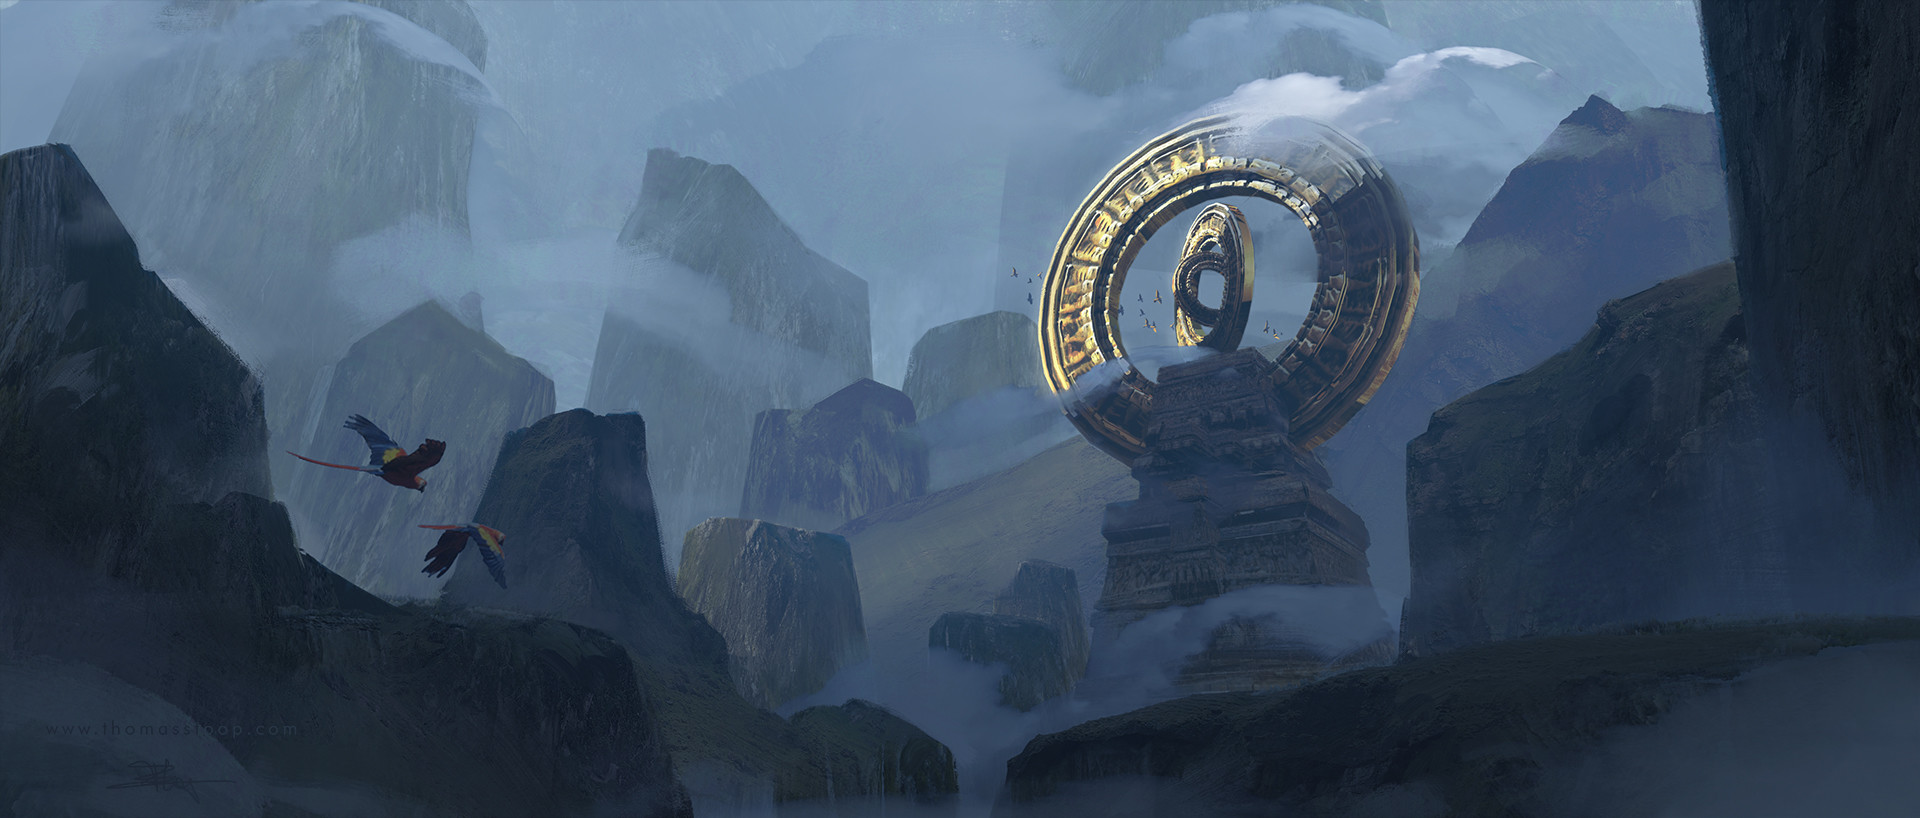 Thomas Stoop Concept Art landscape Sun Temple